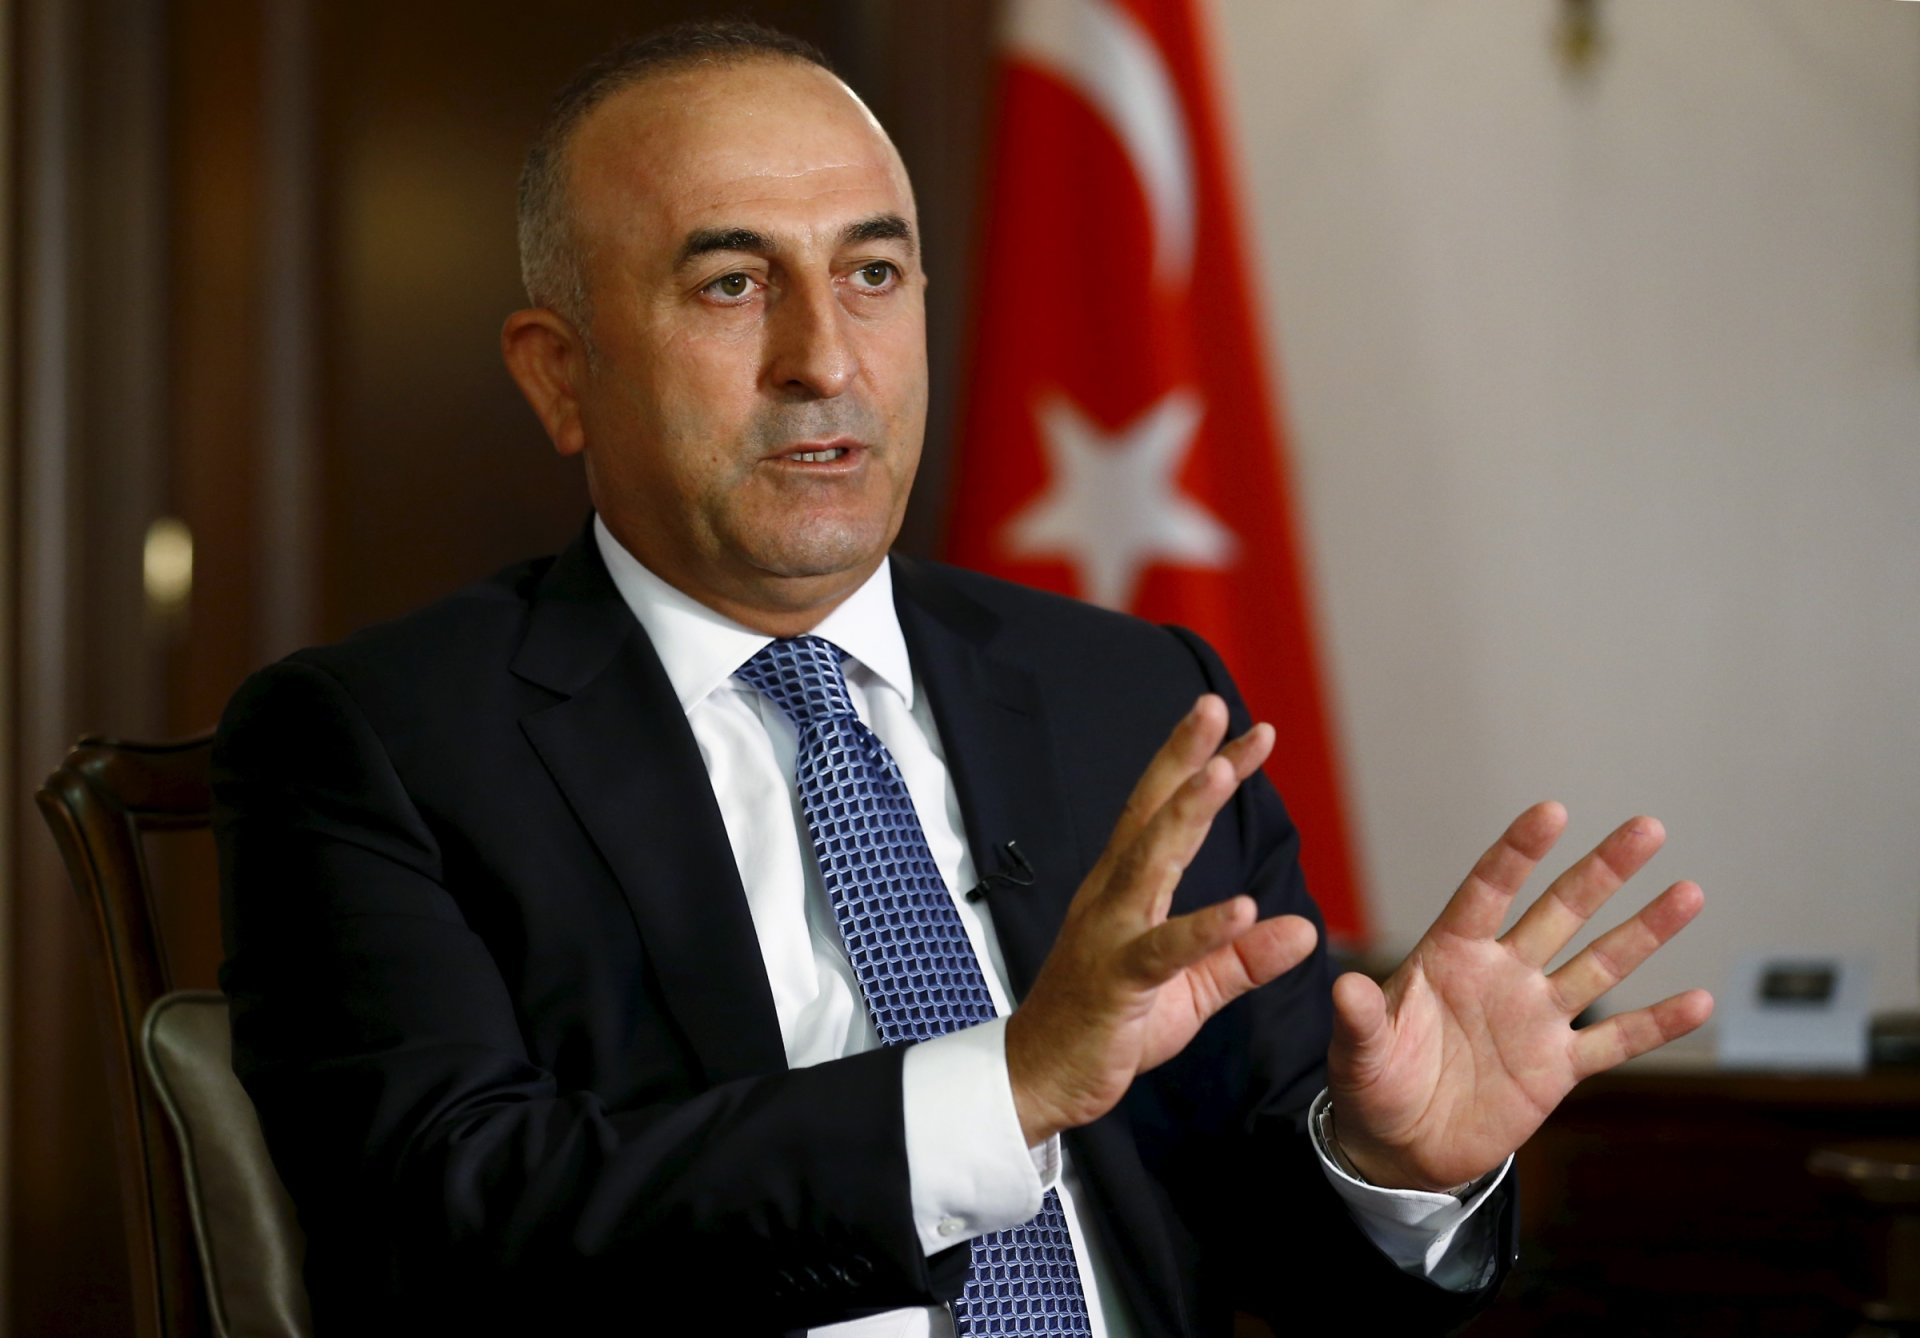 Cavusoglu: We can perform drillings together with Libya